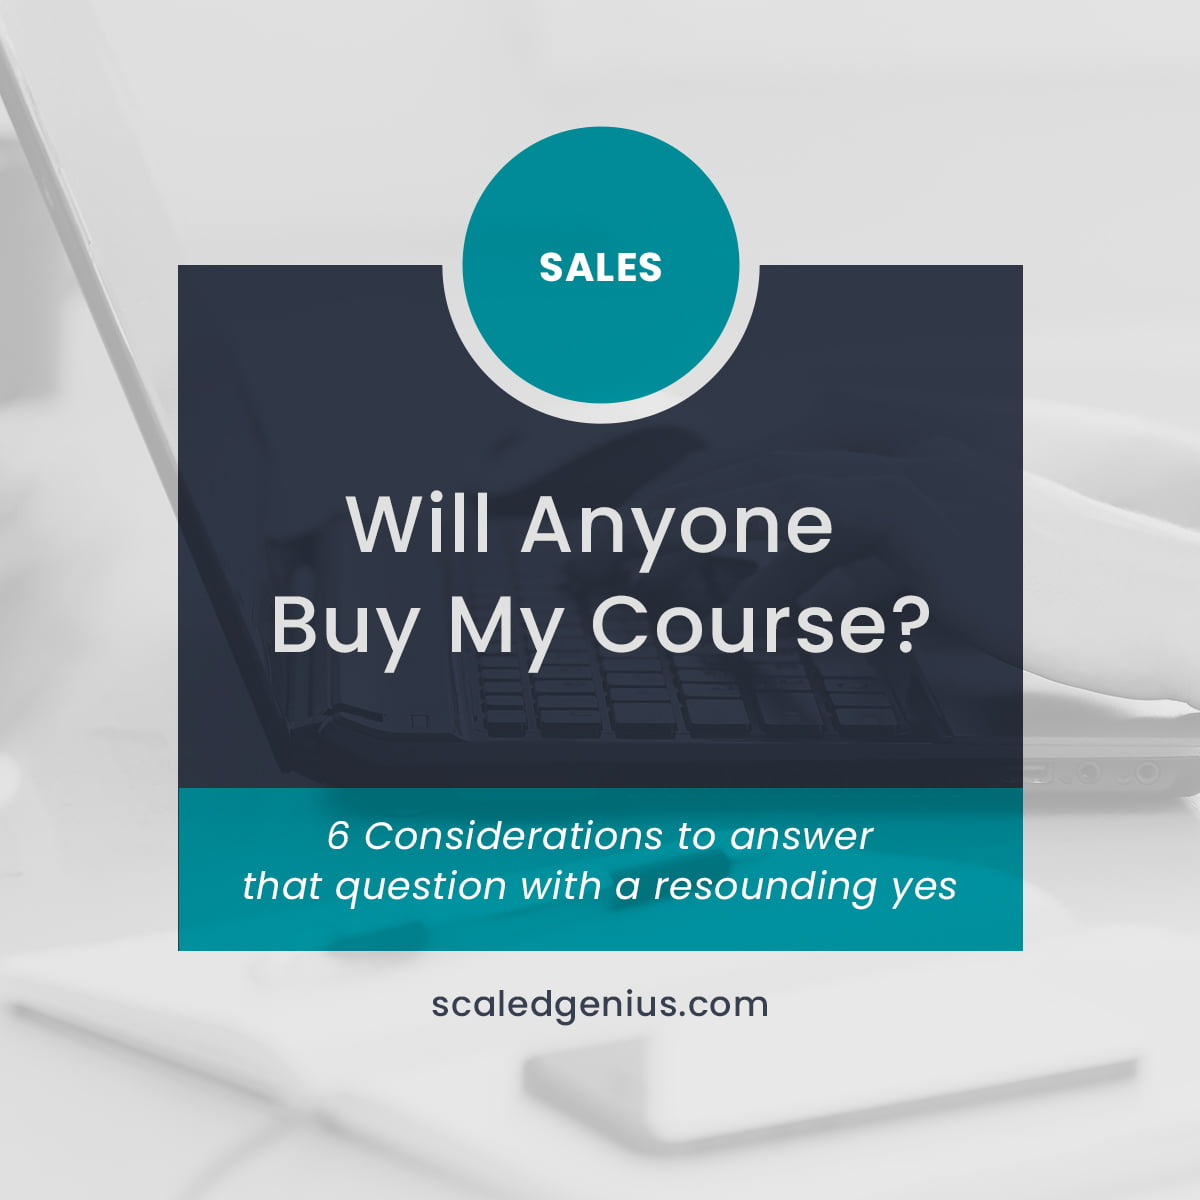 Will Anyone Buy My Course?